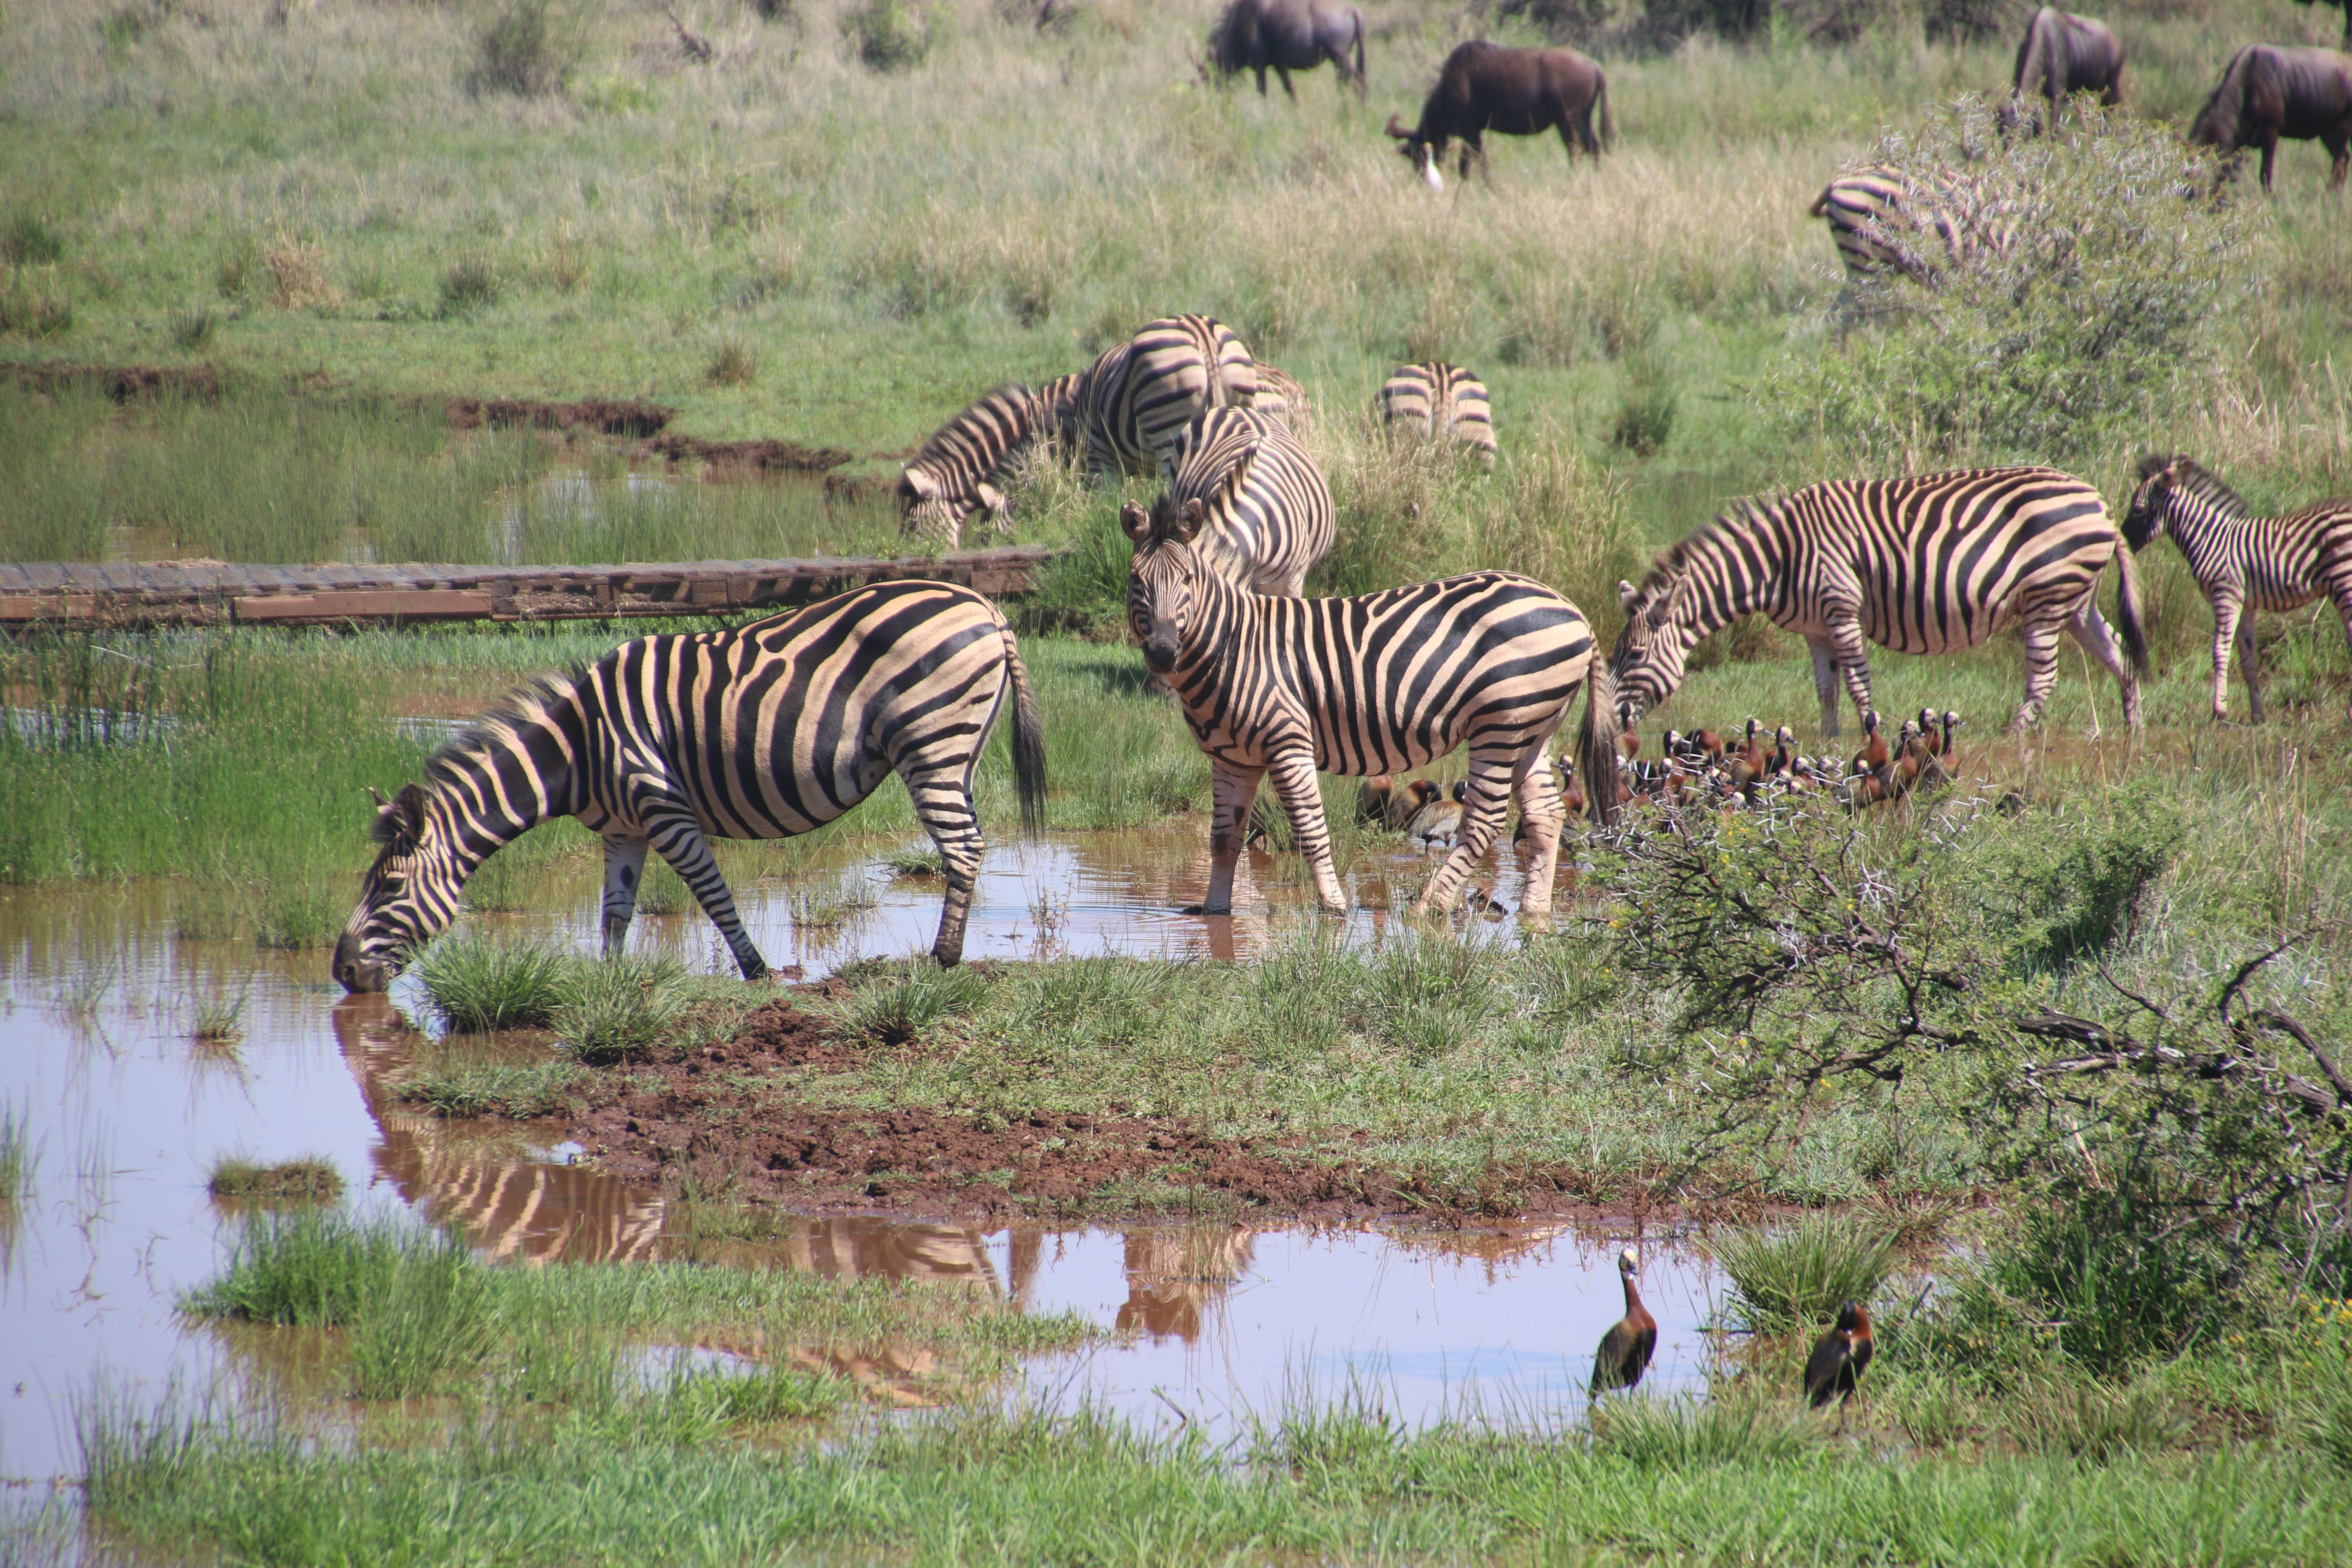 Herd of Zebras on Body of Water With Grass